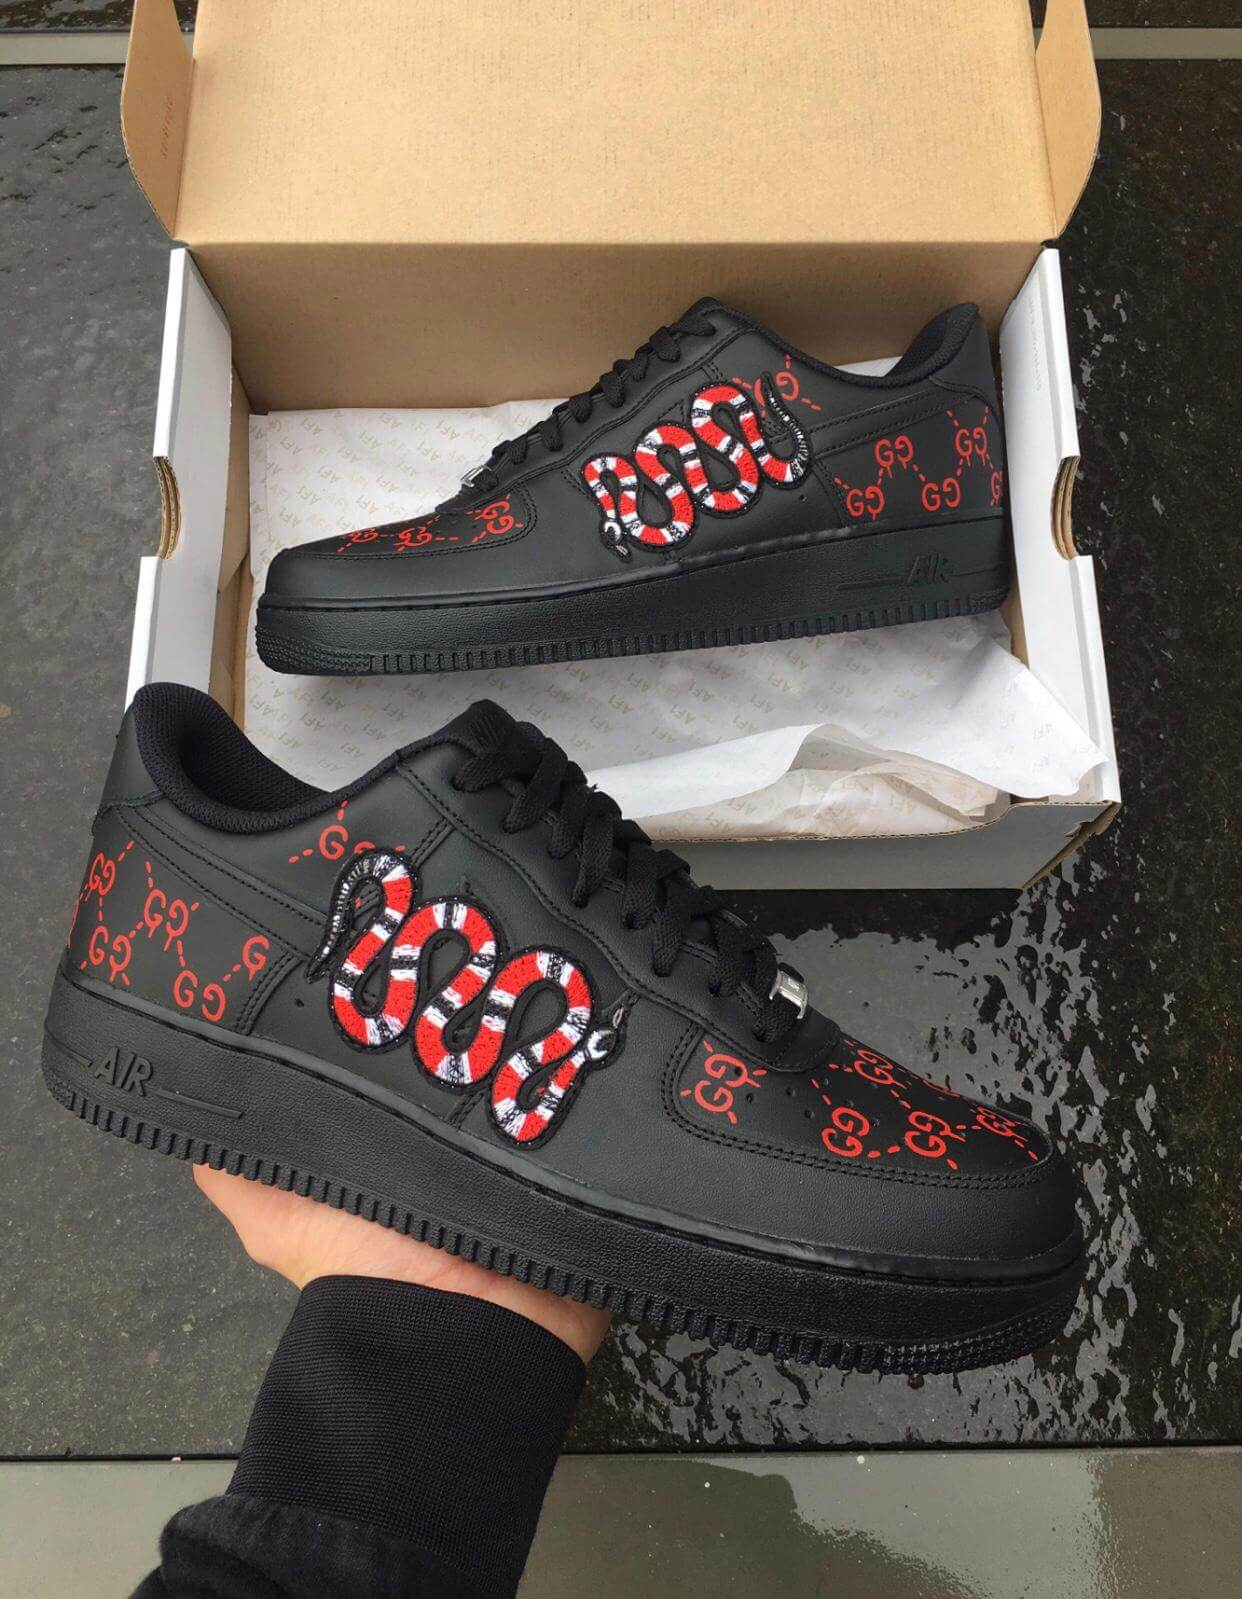 Gucci Snake Air Force 1 Customs